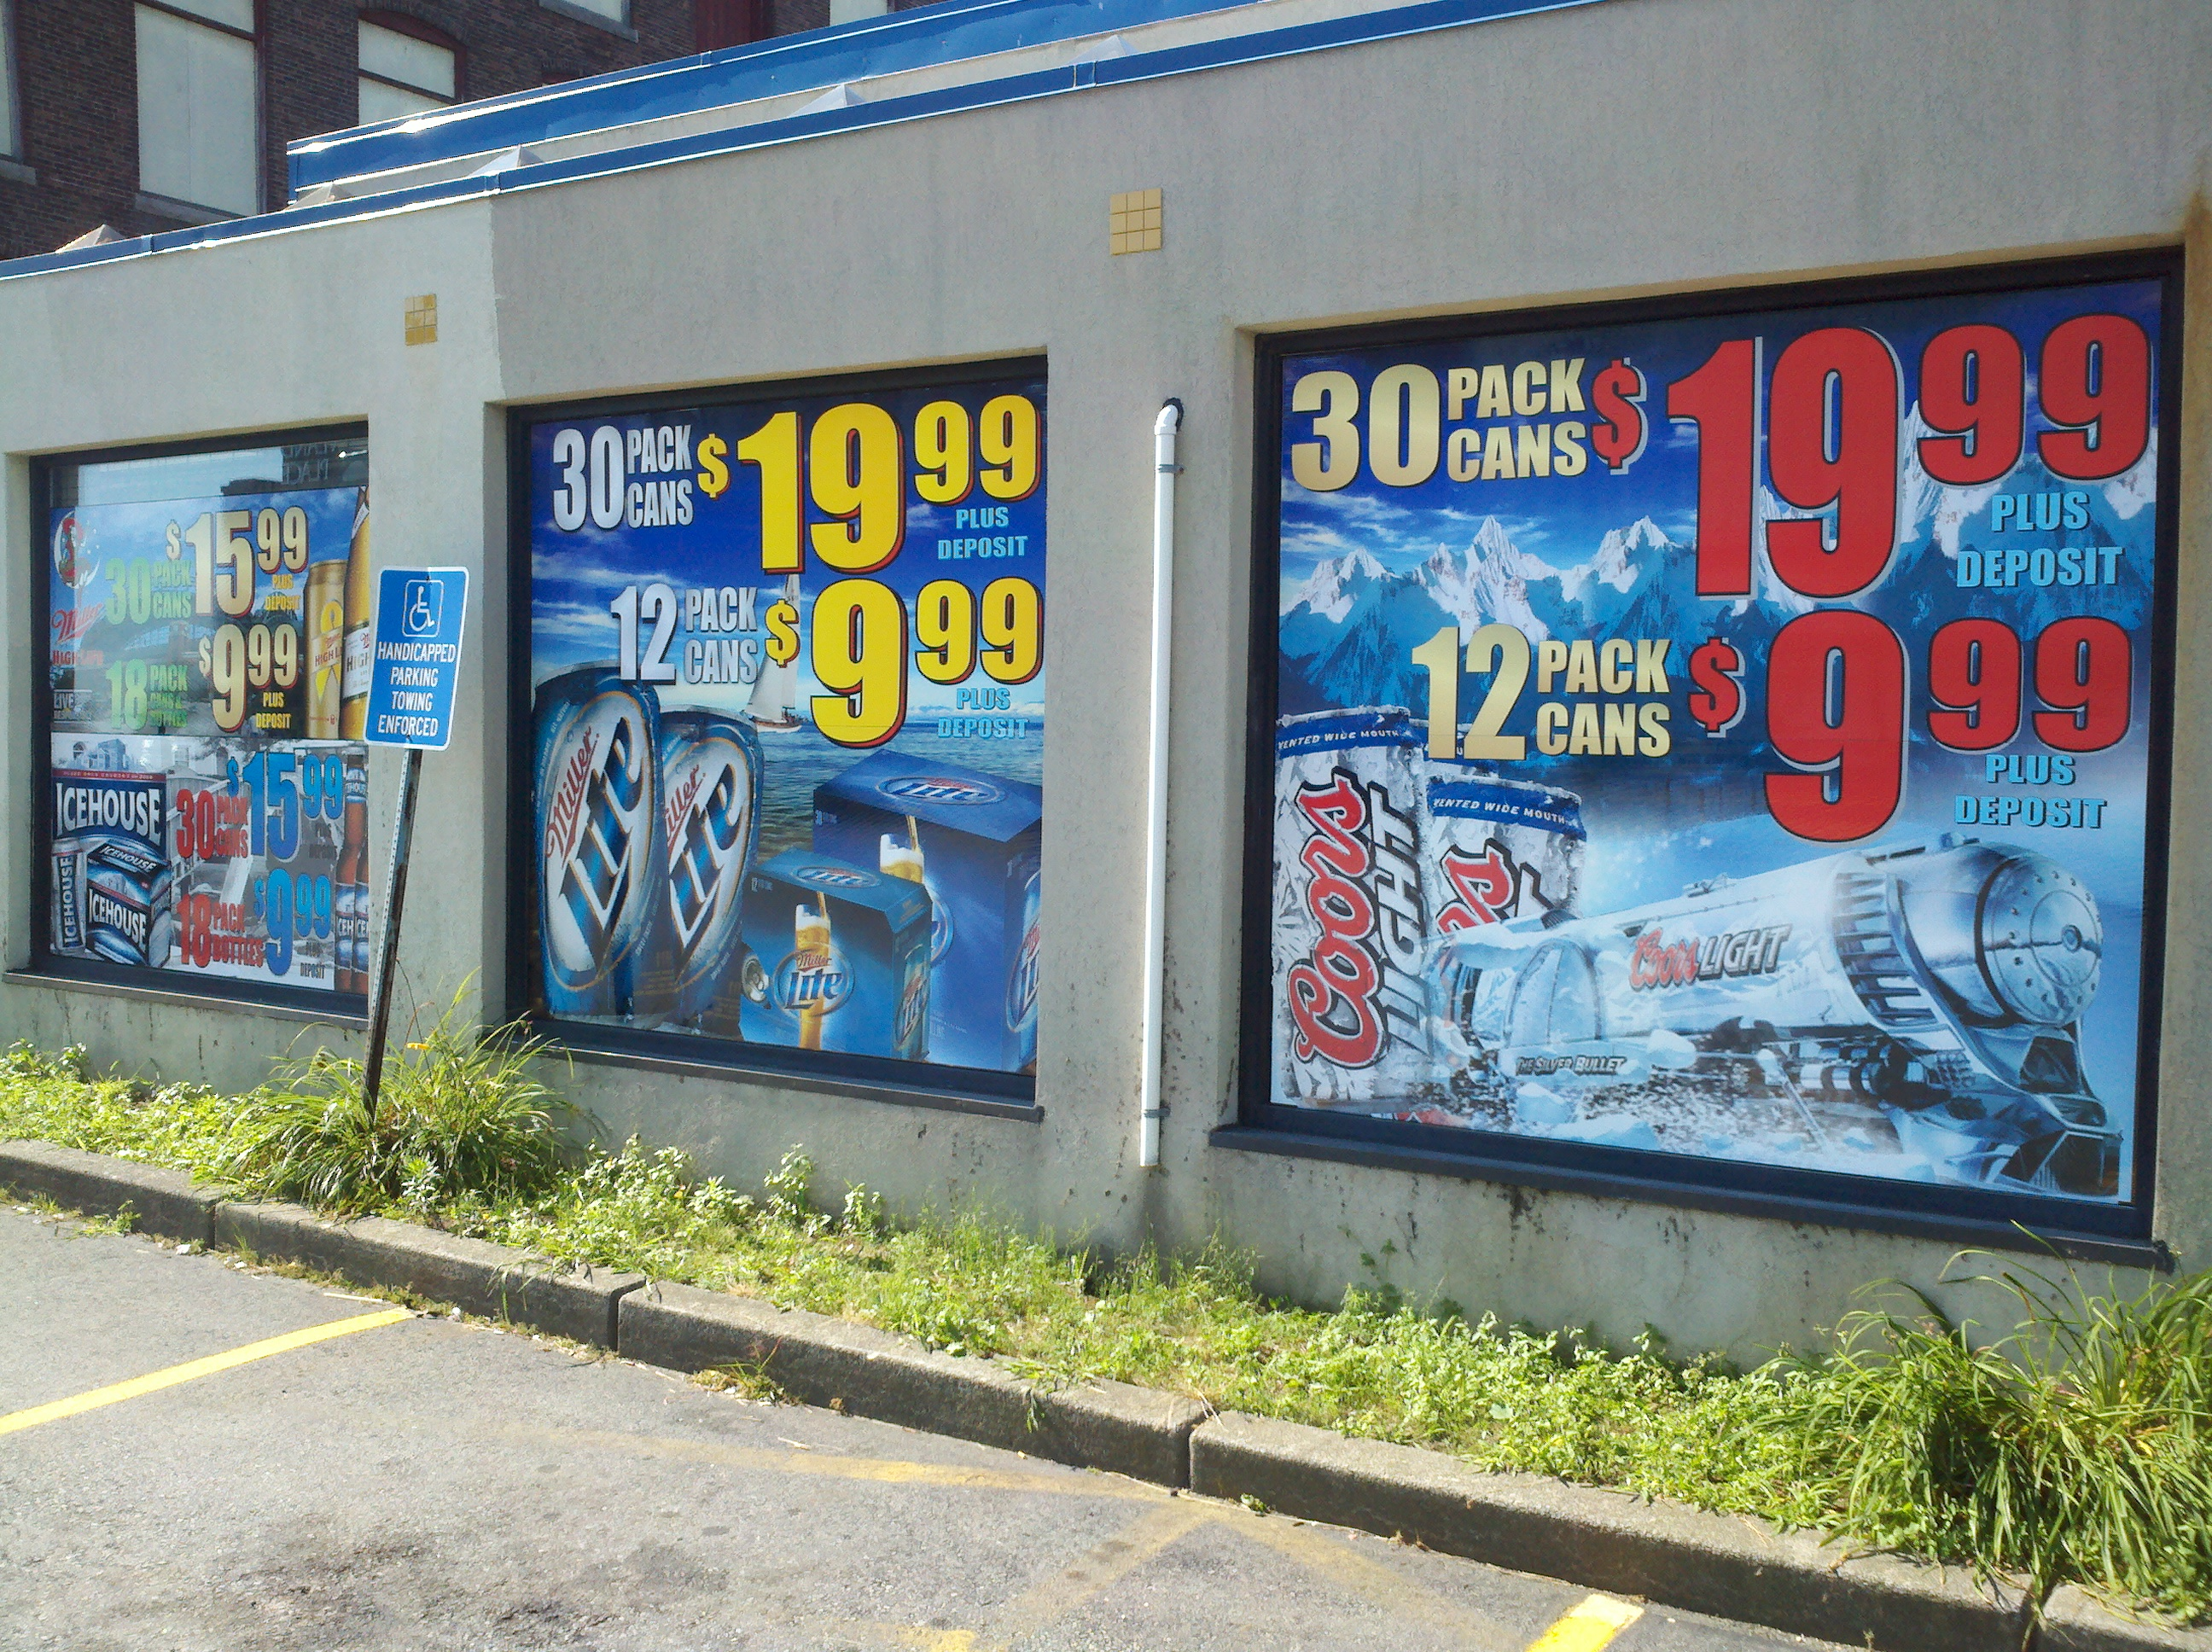 Point Of Sale Perfection Looking Good Sells Beer  Lexjet. How Does Hiv Infect The Body. At&t Promotional Offers Cloud File Management. Online Degree In Environmental Science. Cleaning Services Orlando Fl. Southern Technical Institute. Market Research Companies Los Angeles. Nursing School Clinicals Tnt Security Reviews. Software Testing And Quality Assurance